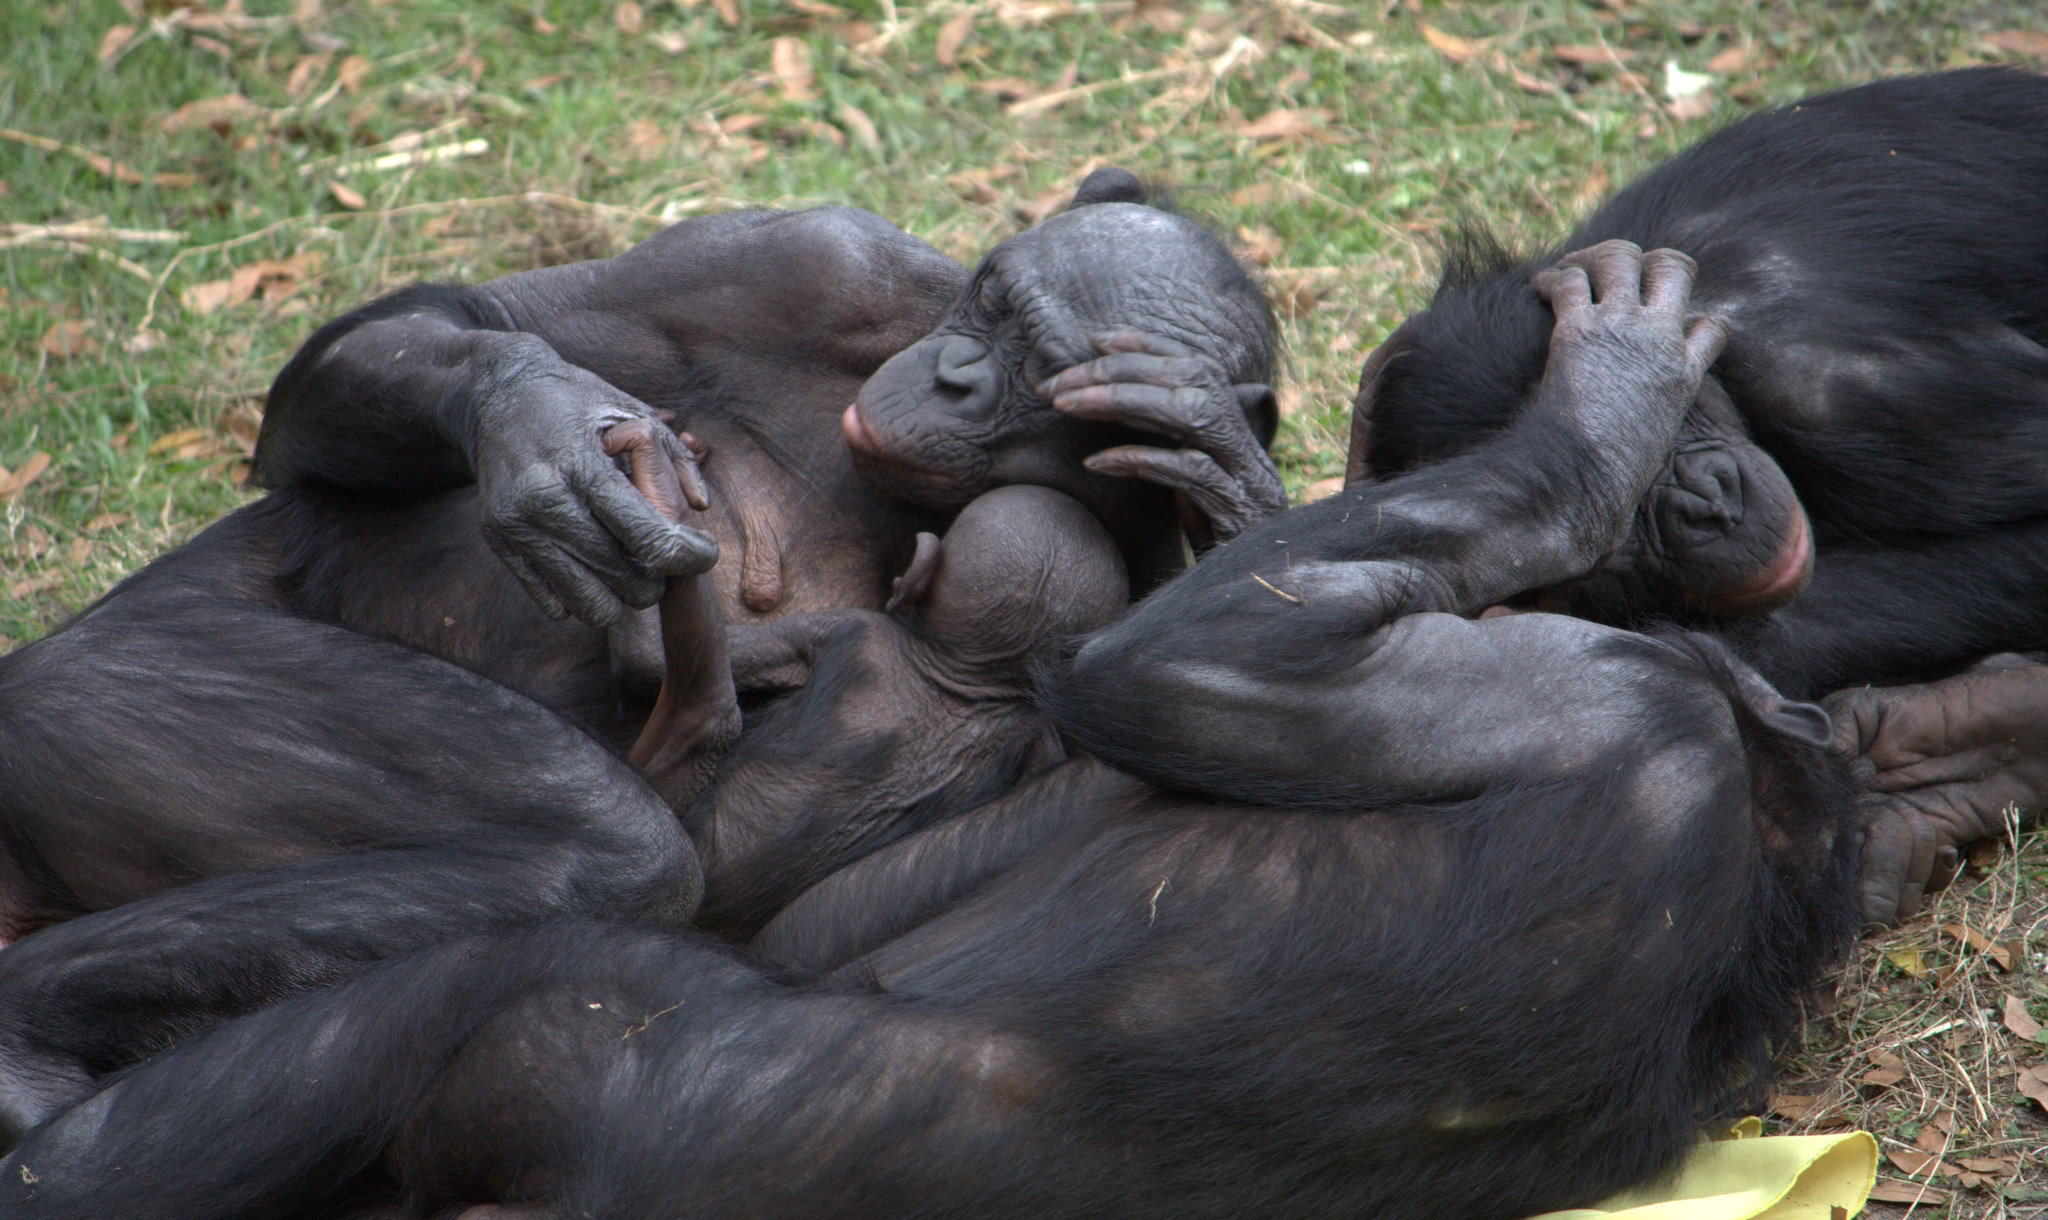 File:Bonobo group hug.jpg - Wikimedia Commons